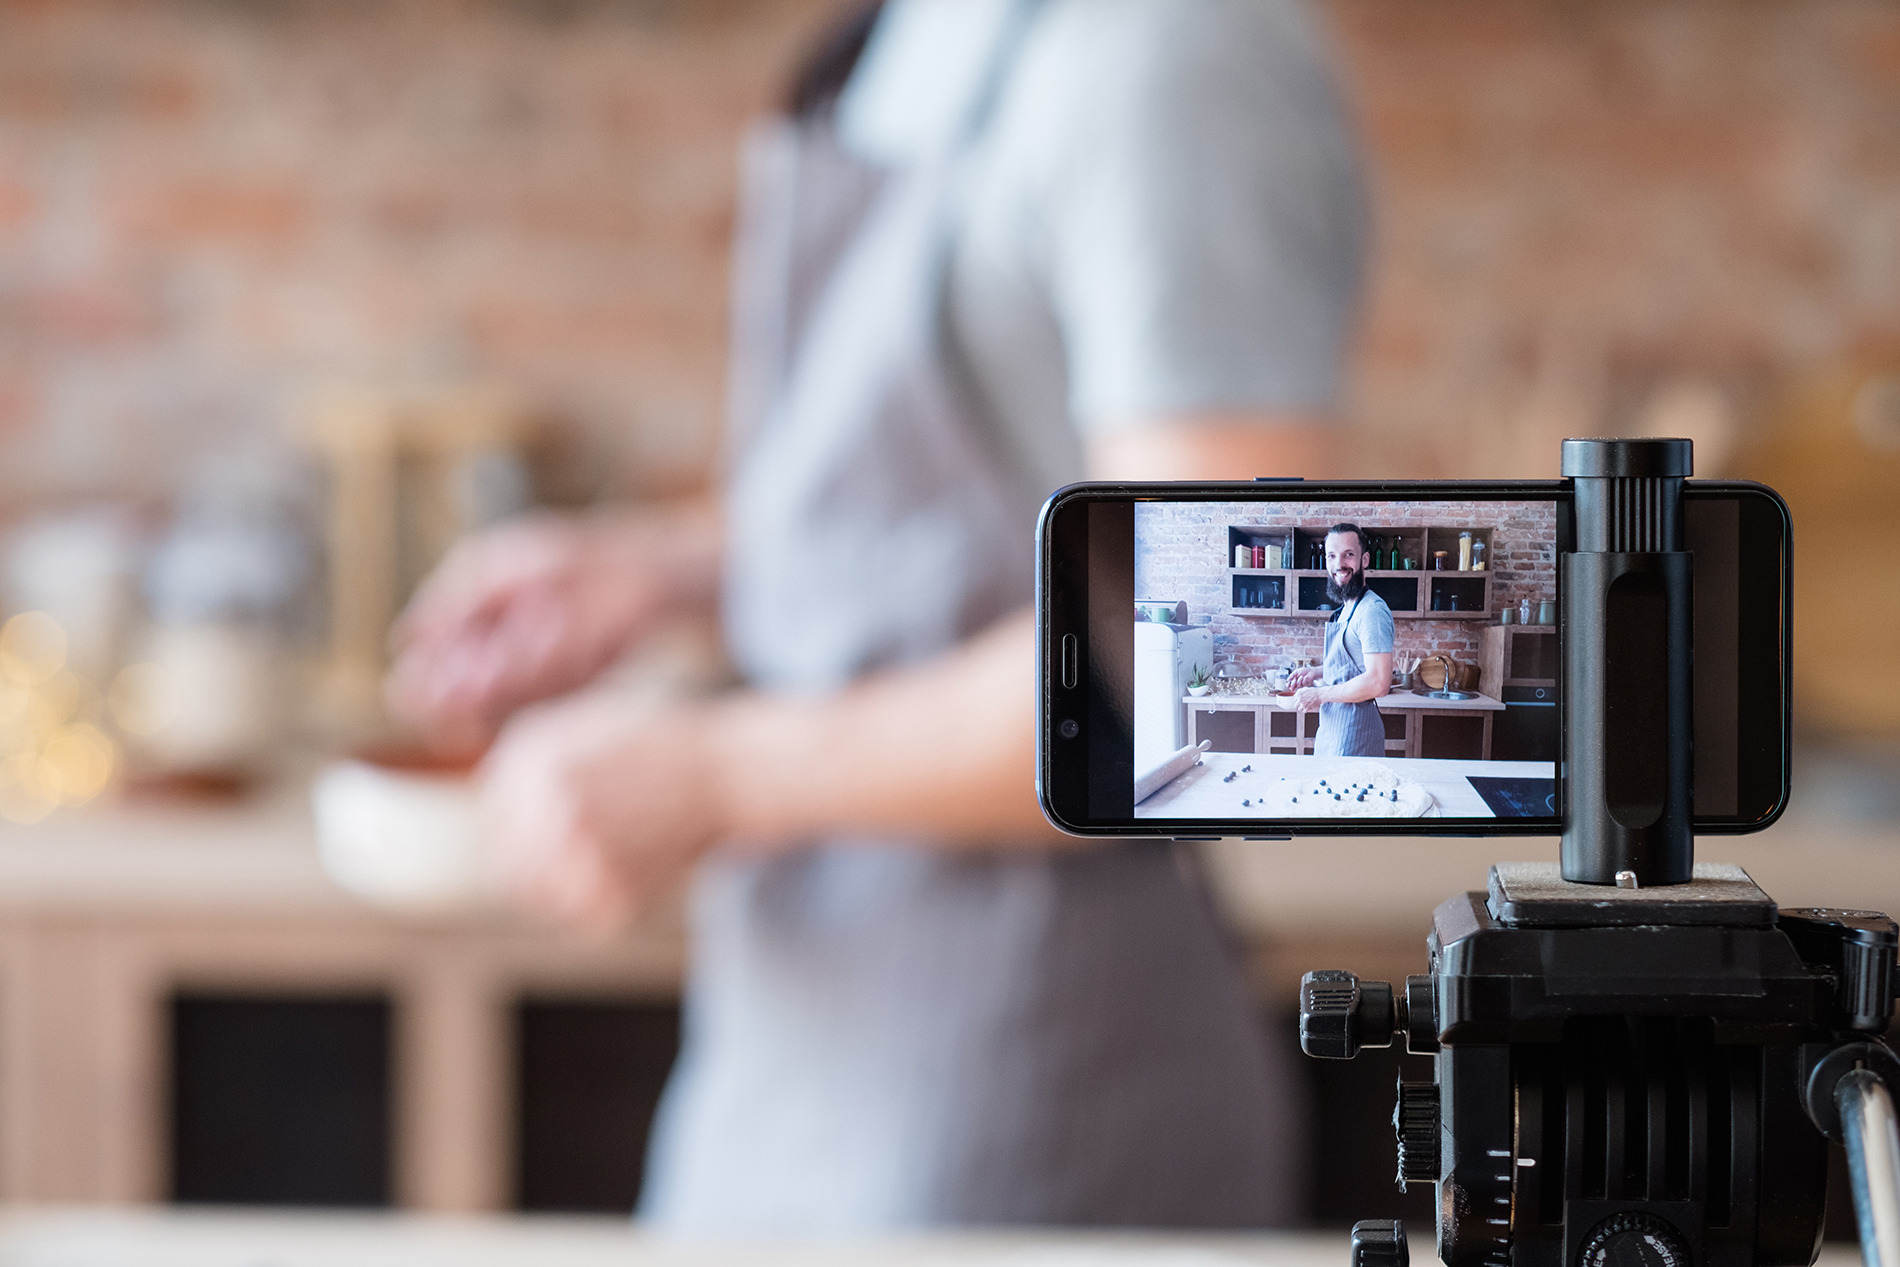 Video for Small Business: 7 Ways to Boost Your Brand [Examples]